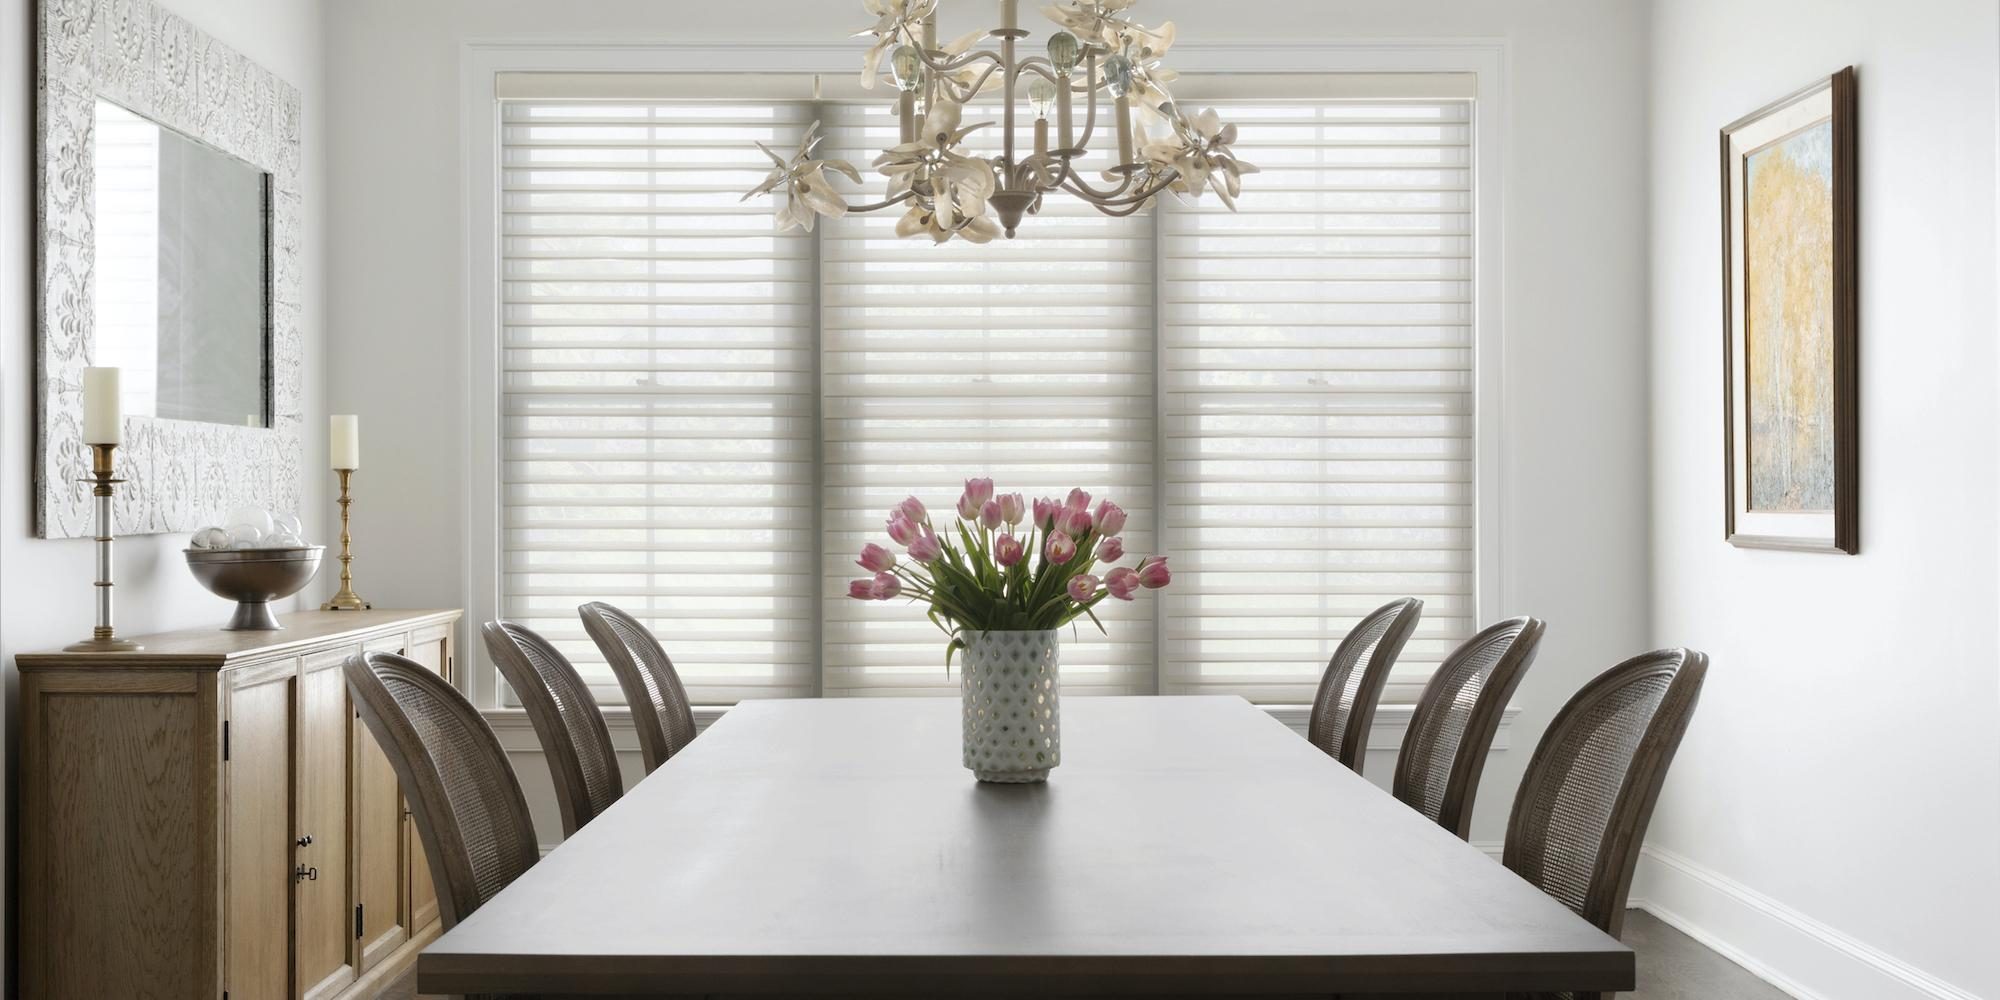 Light pours into a dining room with large windows partially covered with Serenity sheer shades in white